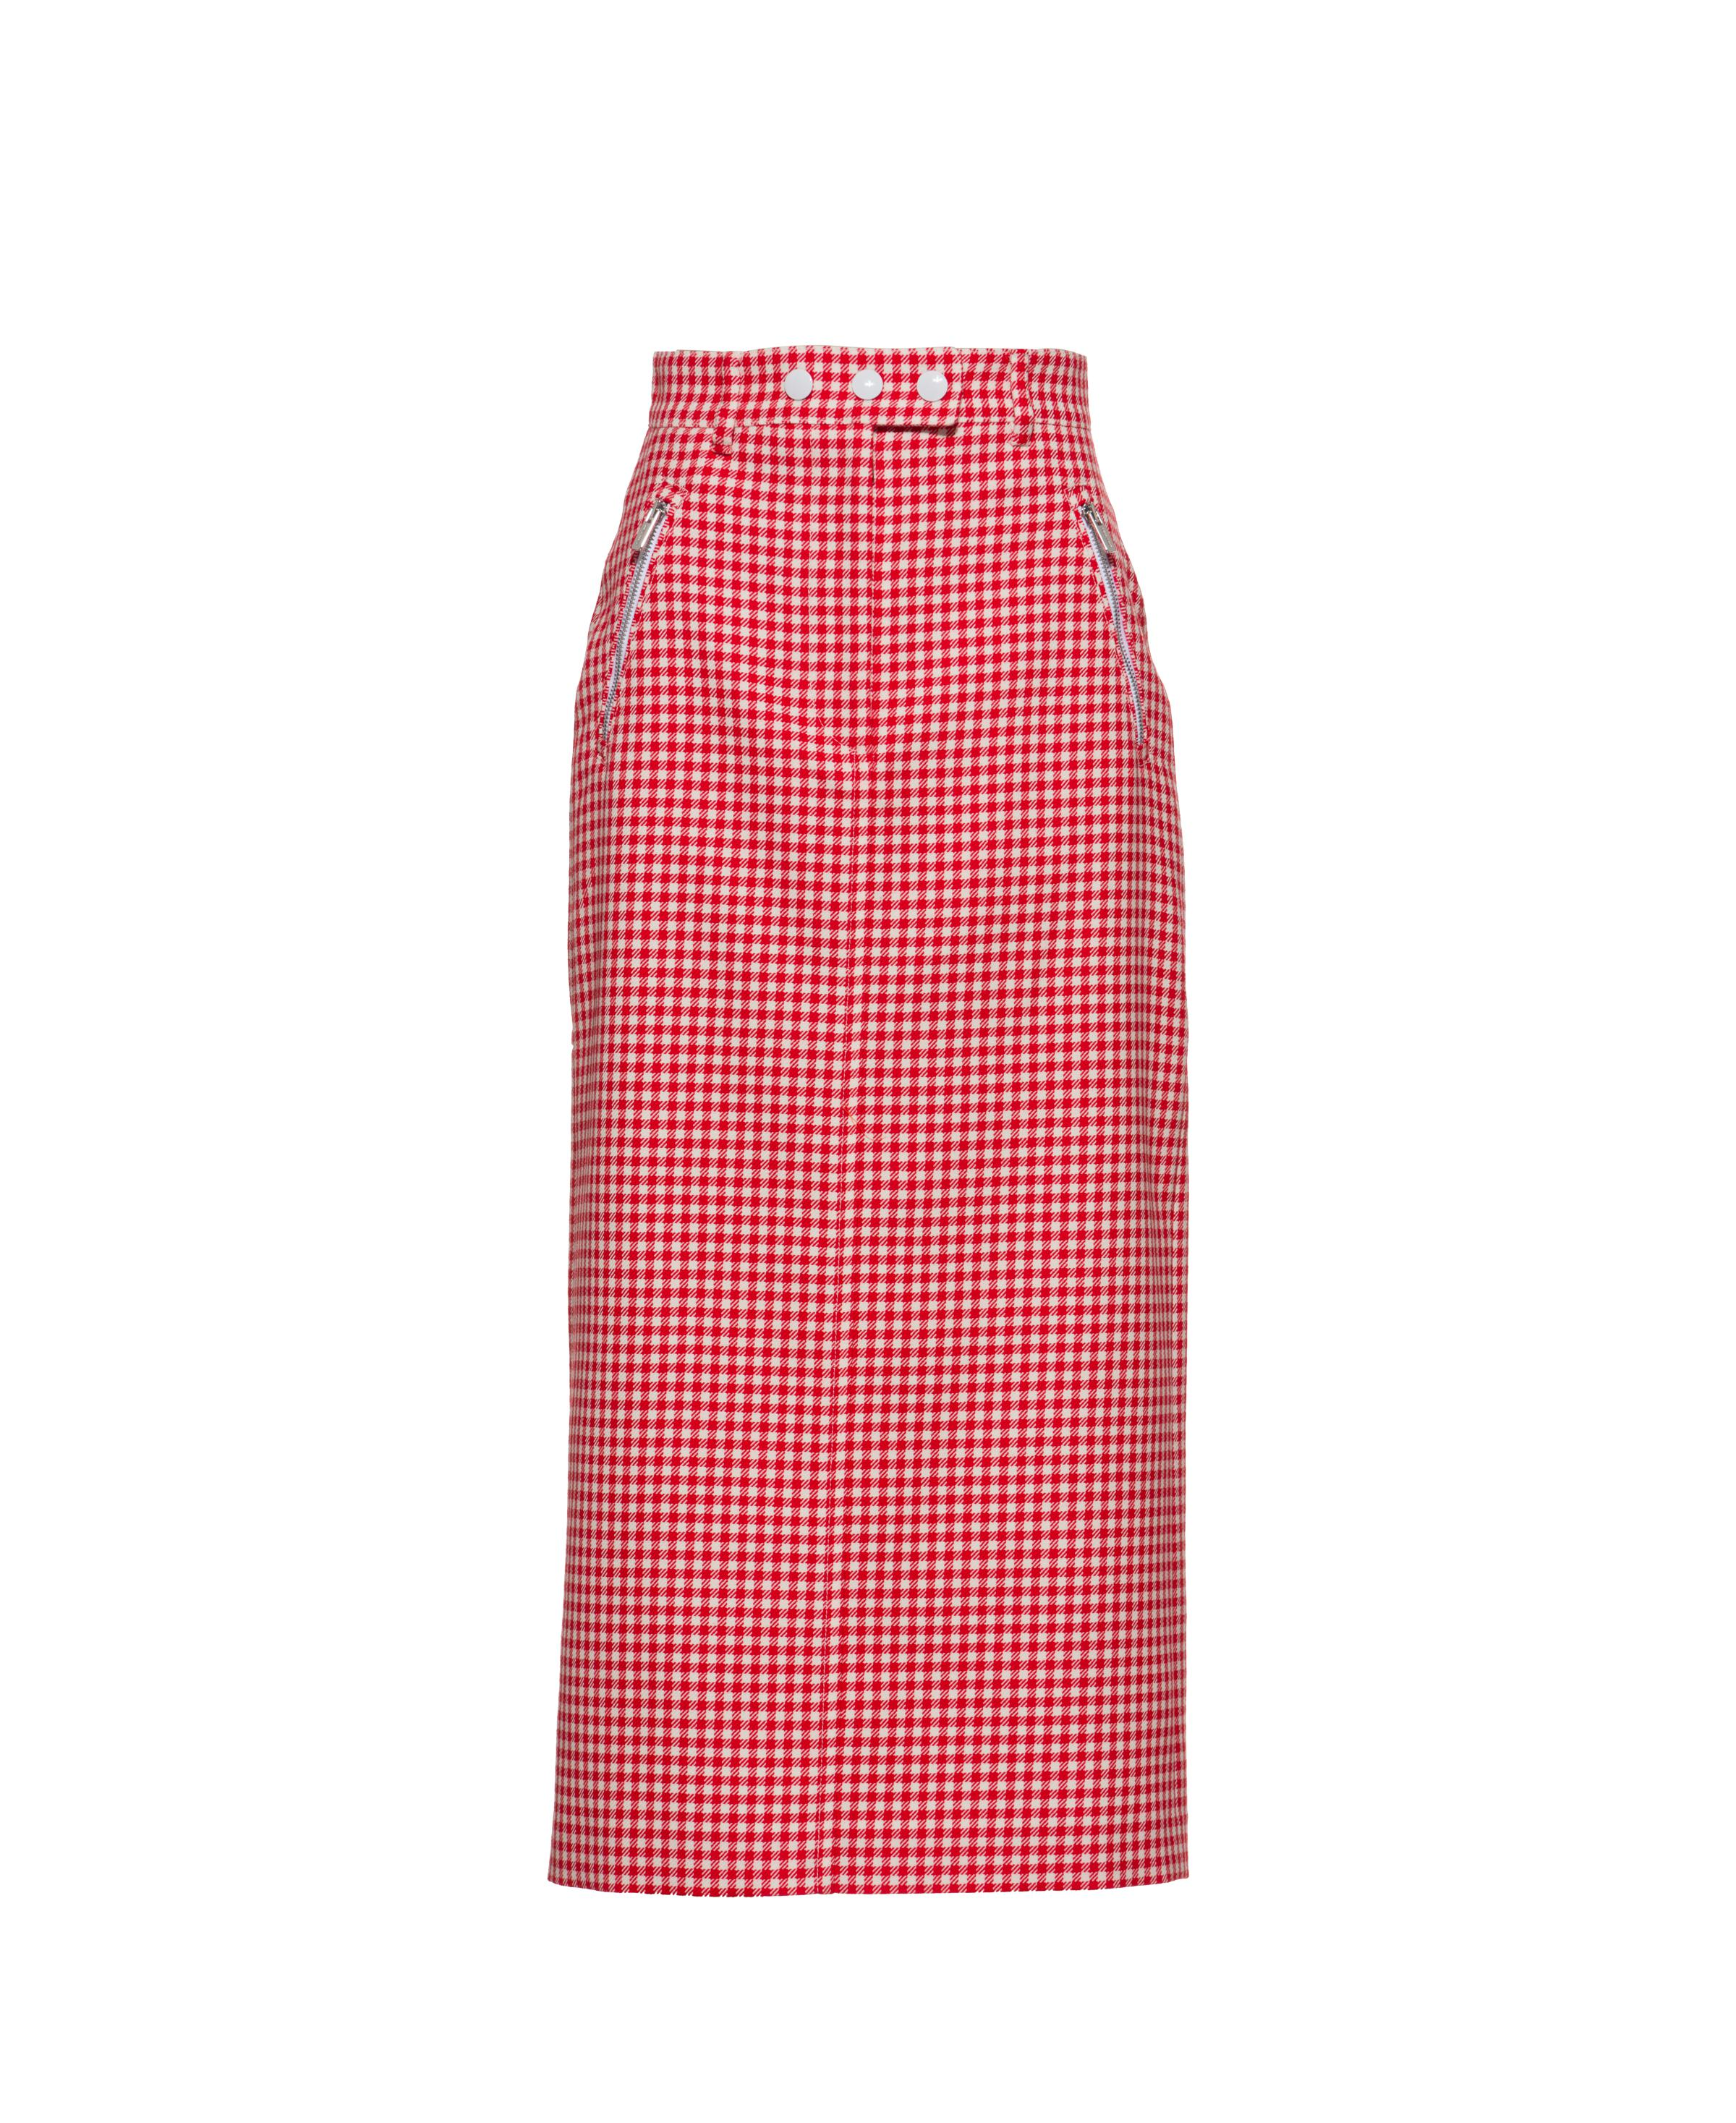 Gingham Check Twill Skirt Women Red